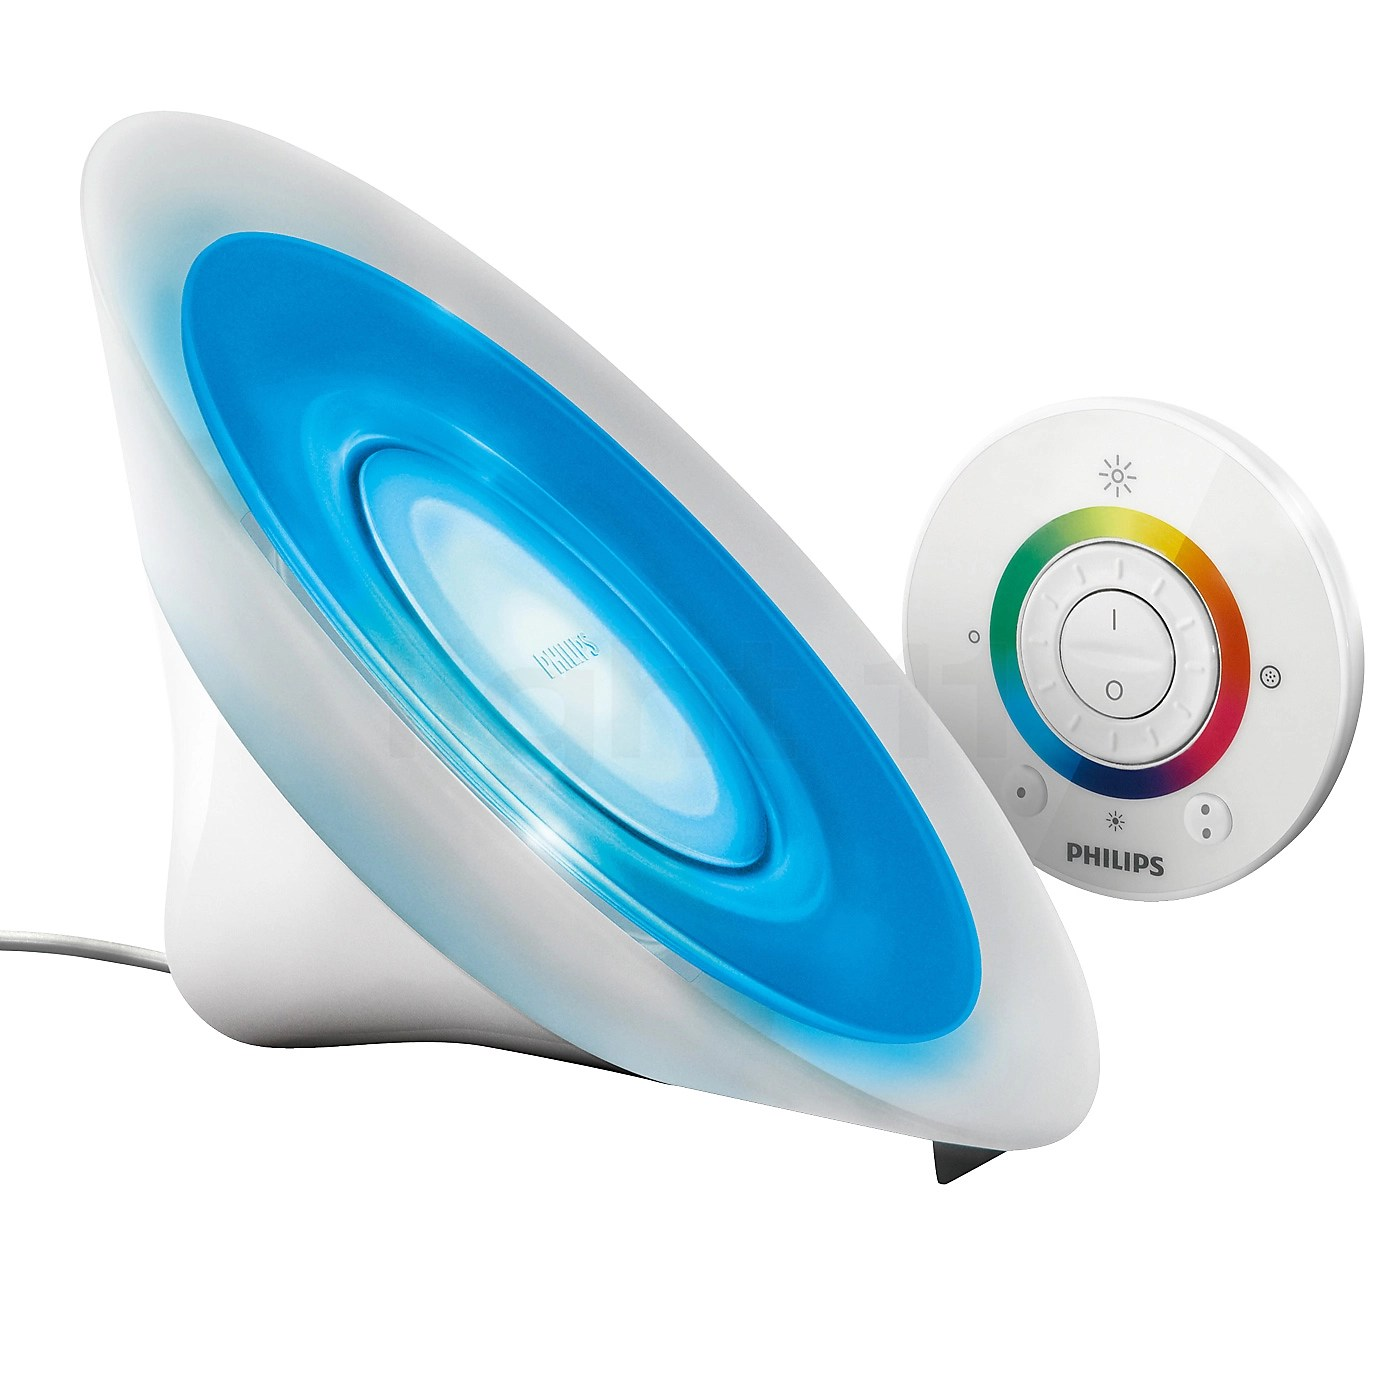 Philips Colour Lamp Philips Livingcolors Aura Table Lamp Table Lamps Buy At